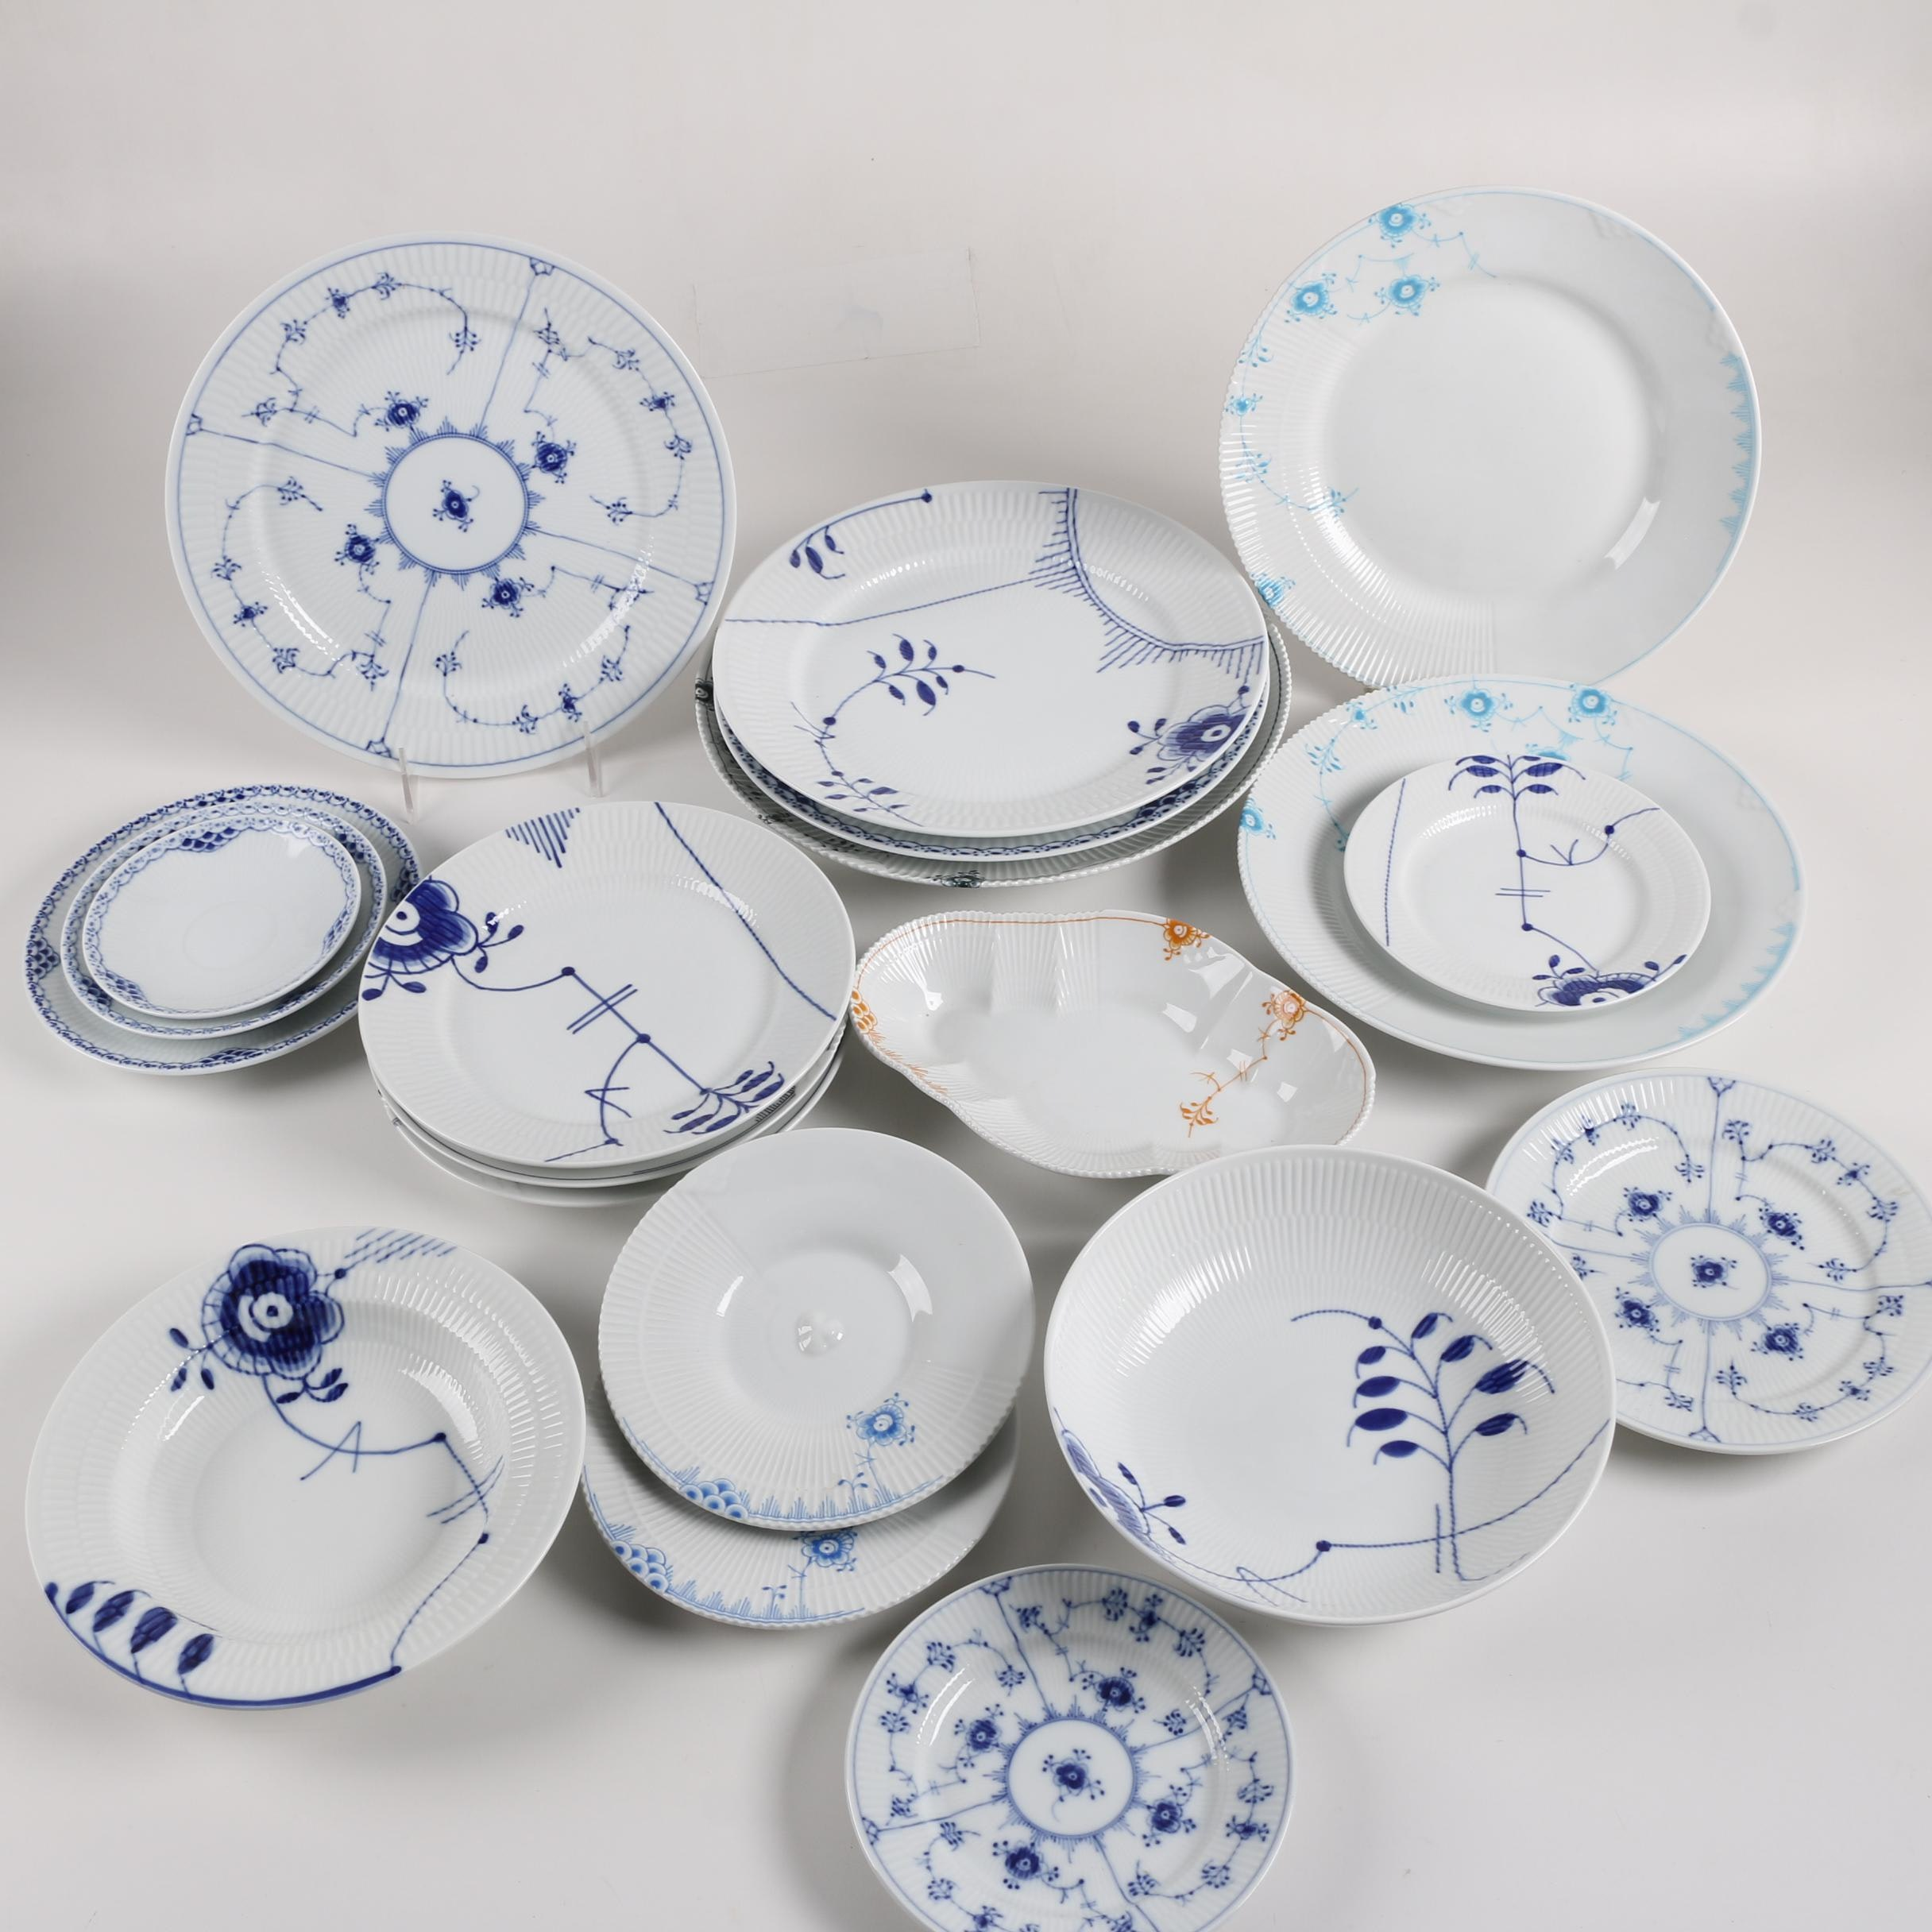 Vintage and Contemporary Royal Copenhagen Porcelain Dinnerware and Serveware